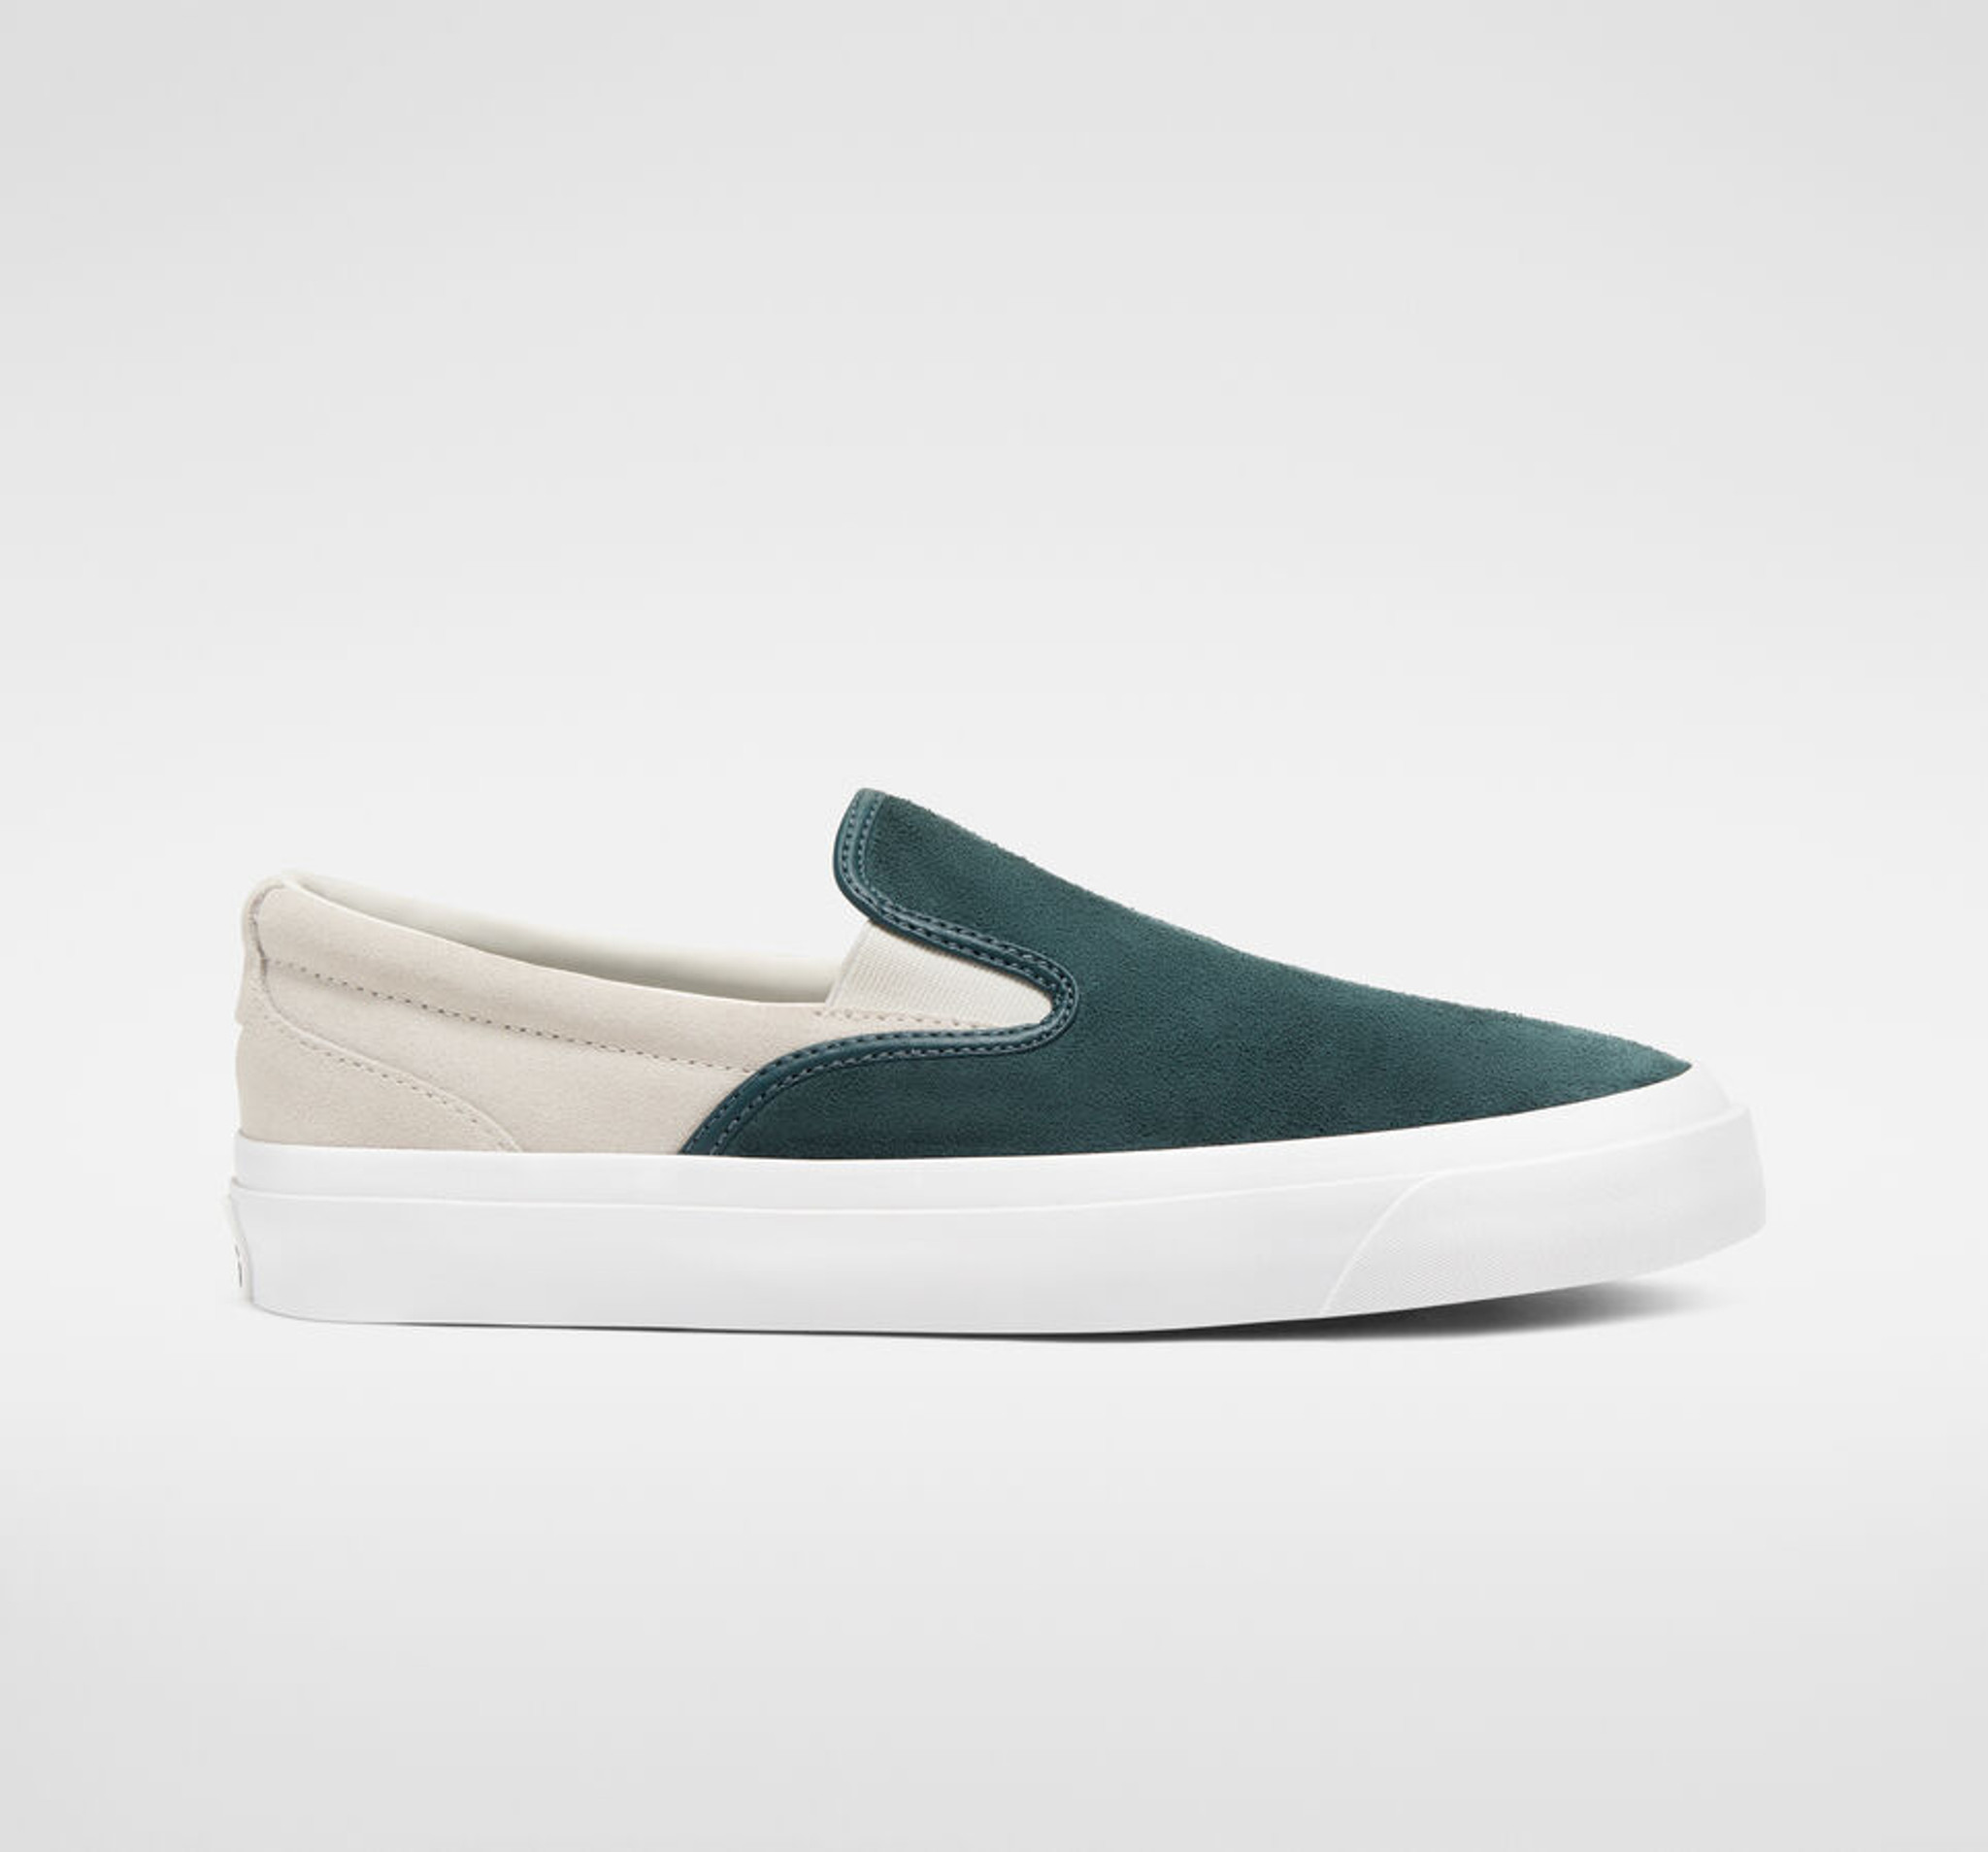 Converse CONS One Star CC Pro Suede